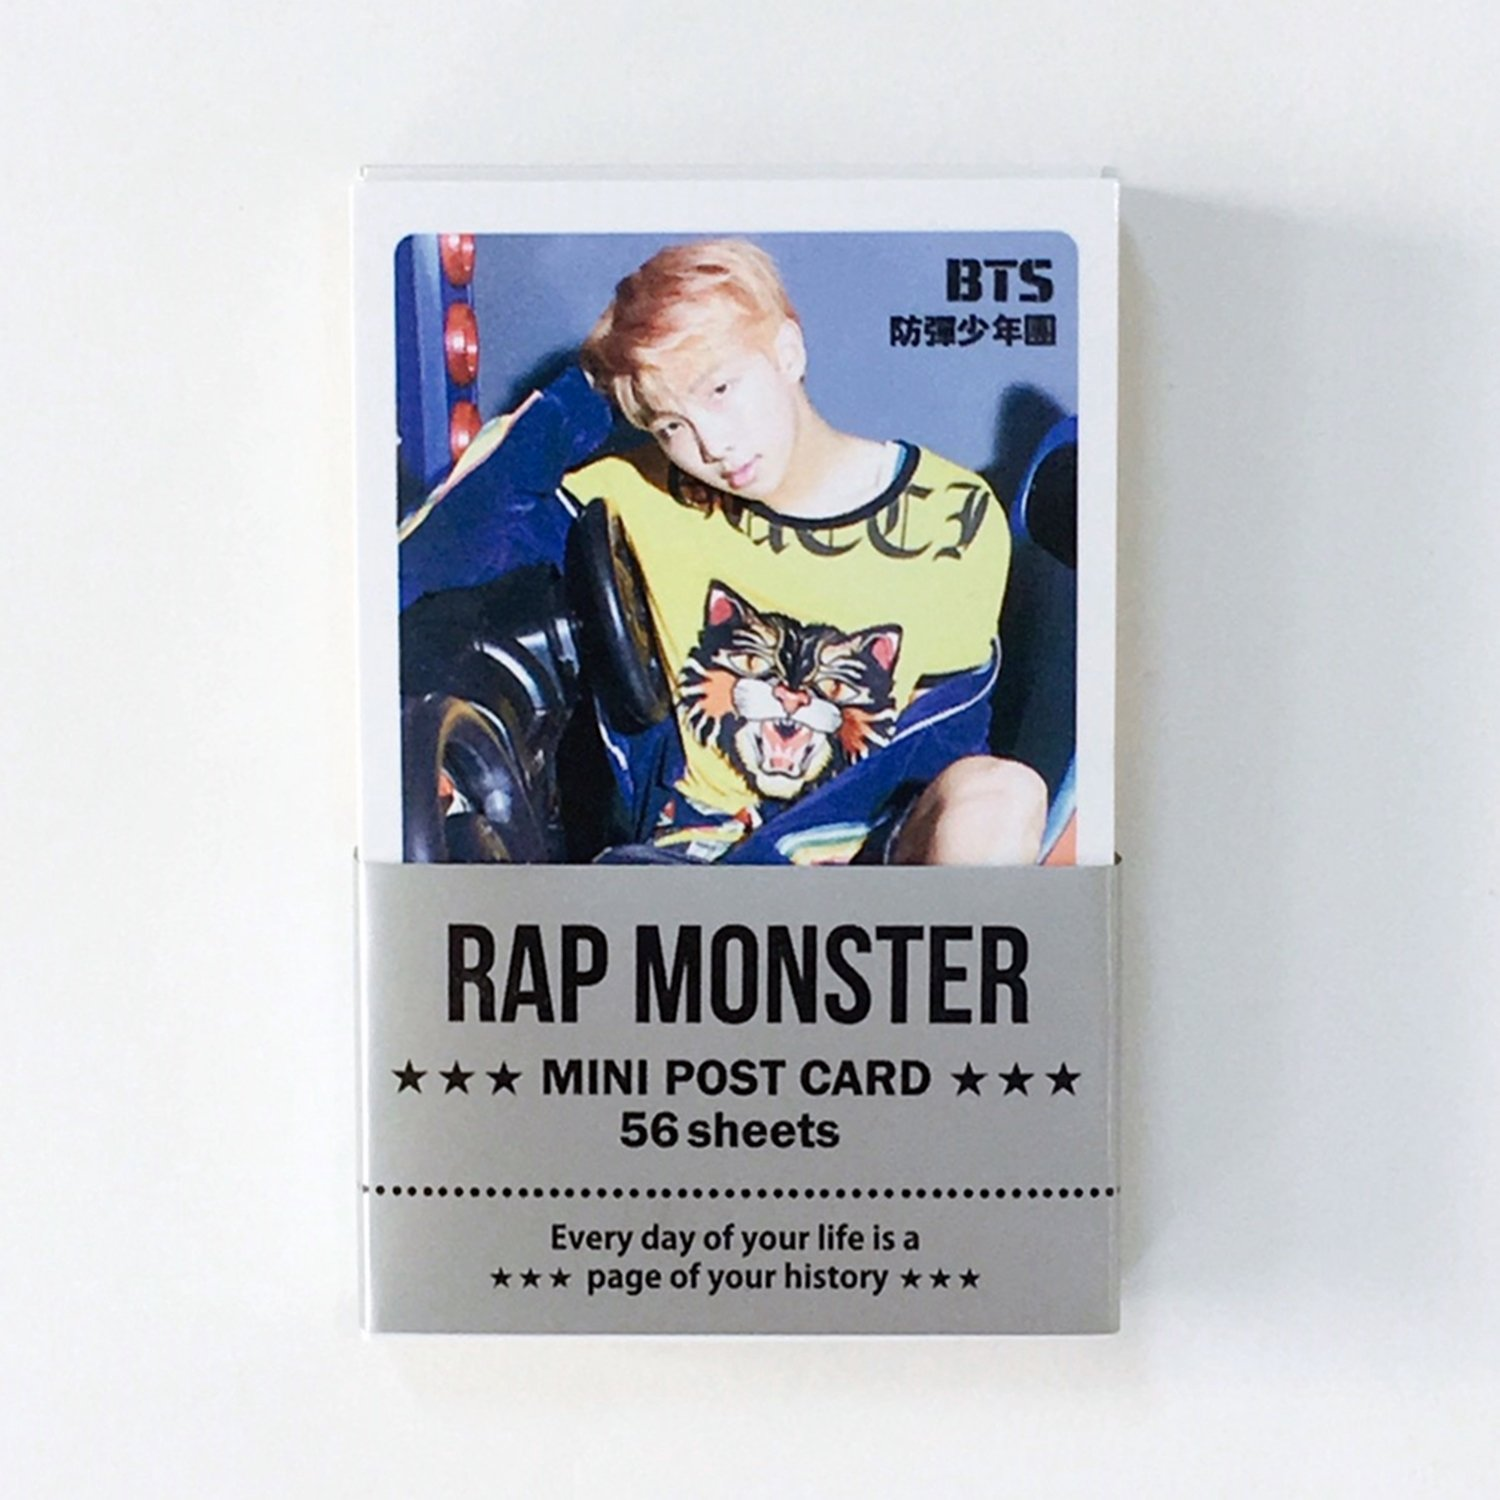 BTS - RAP MONSTER Solo Photocards 56pcs